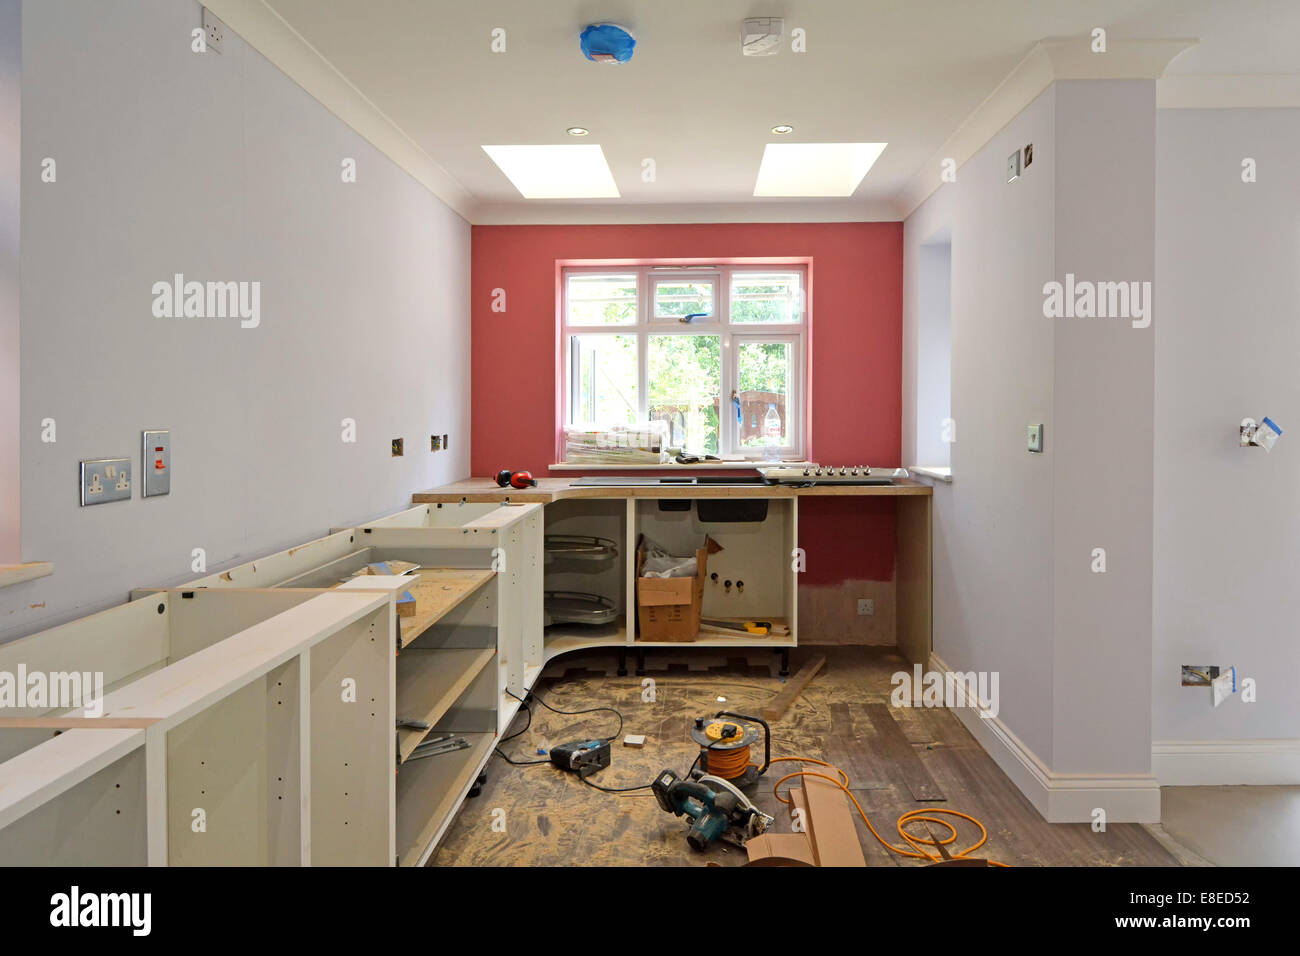 Kitchen Cabinets Being Installed In New Extension To